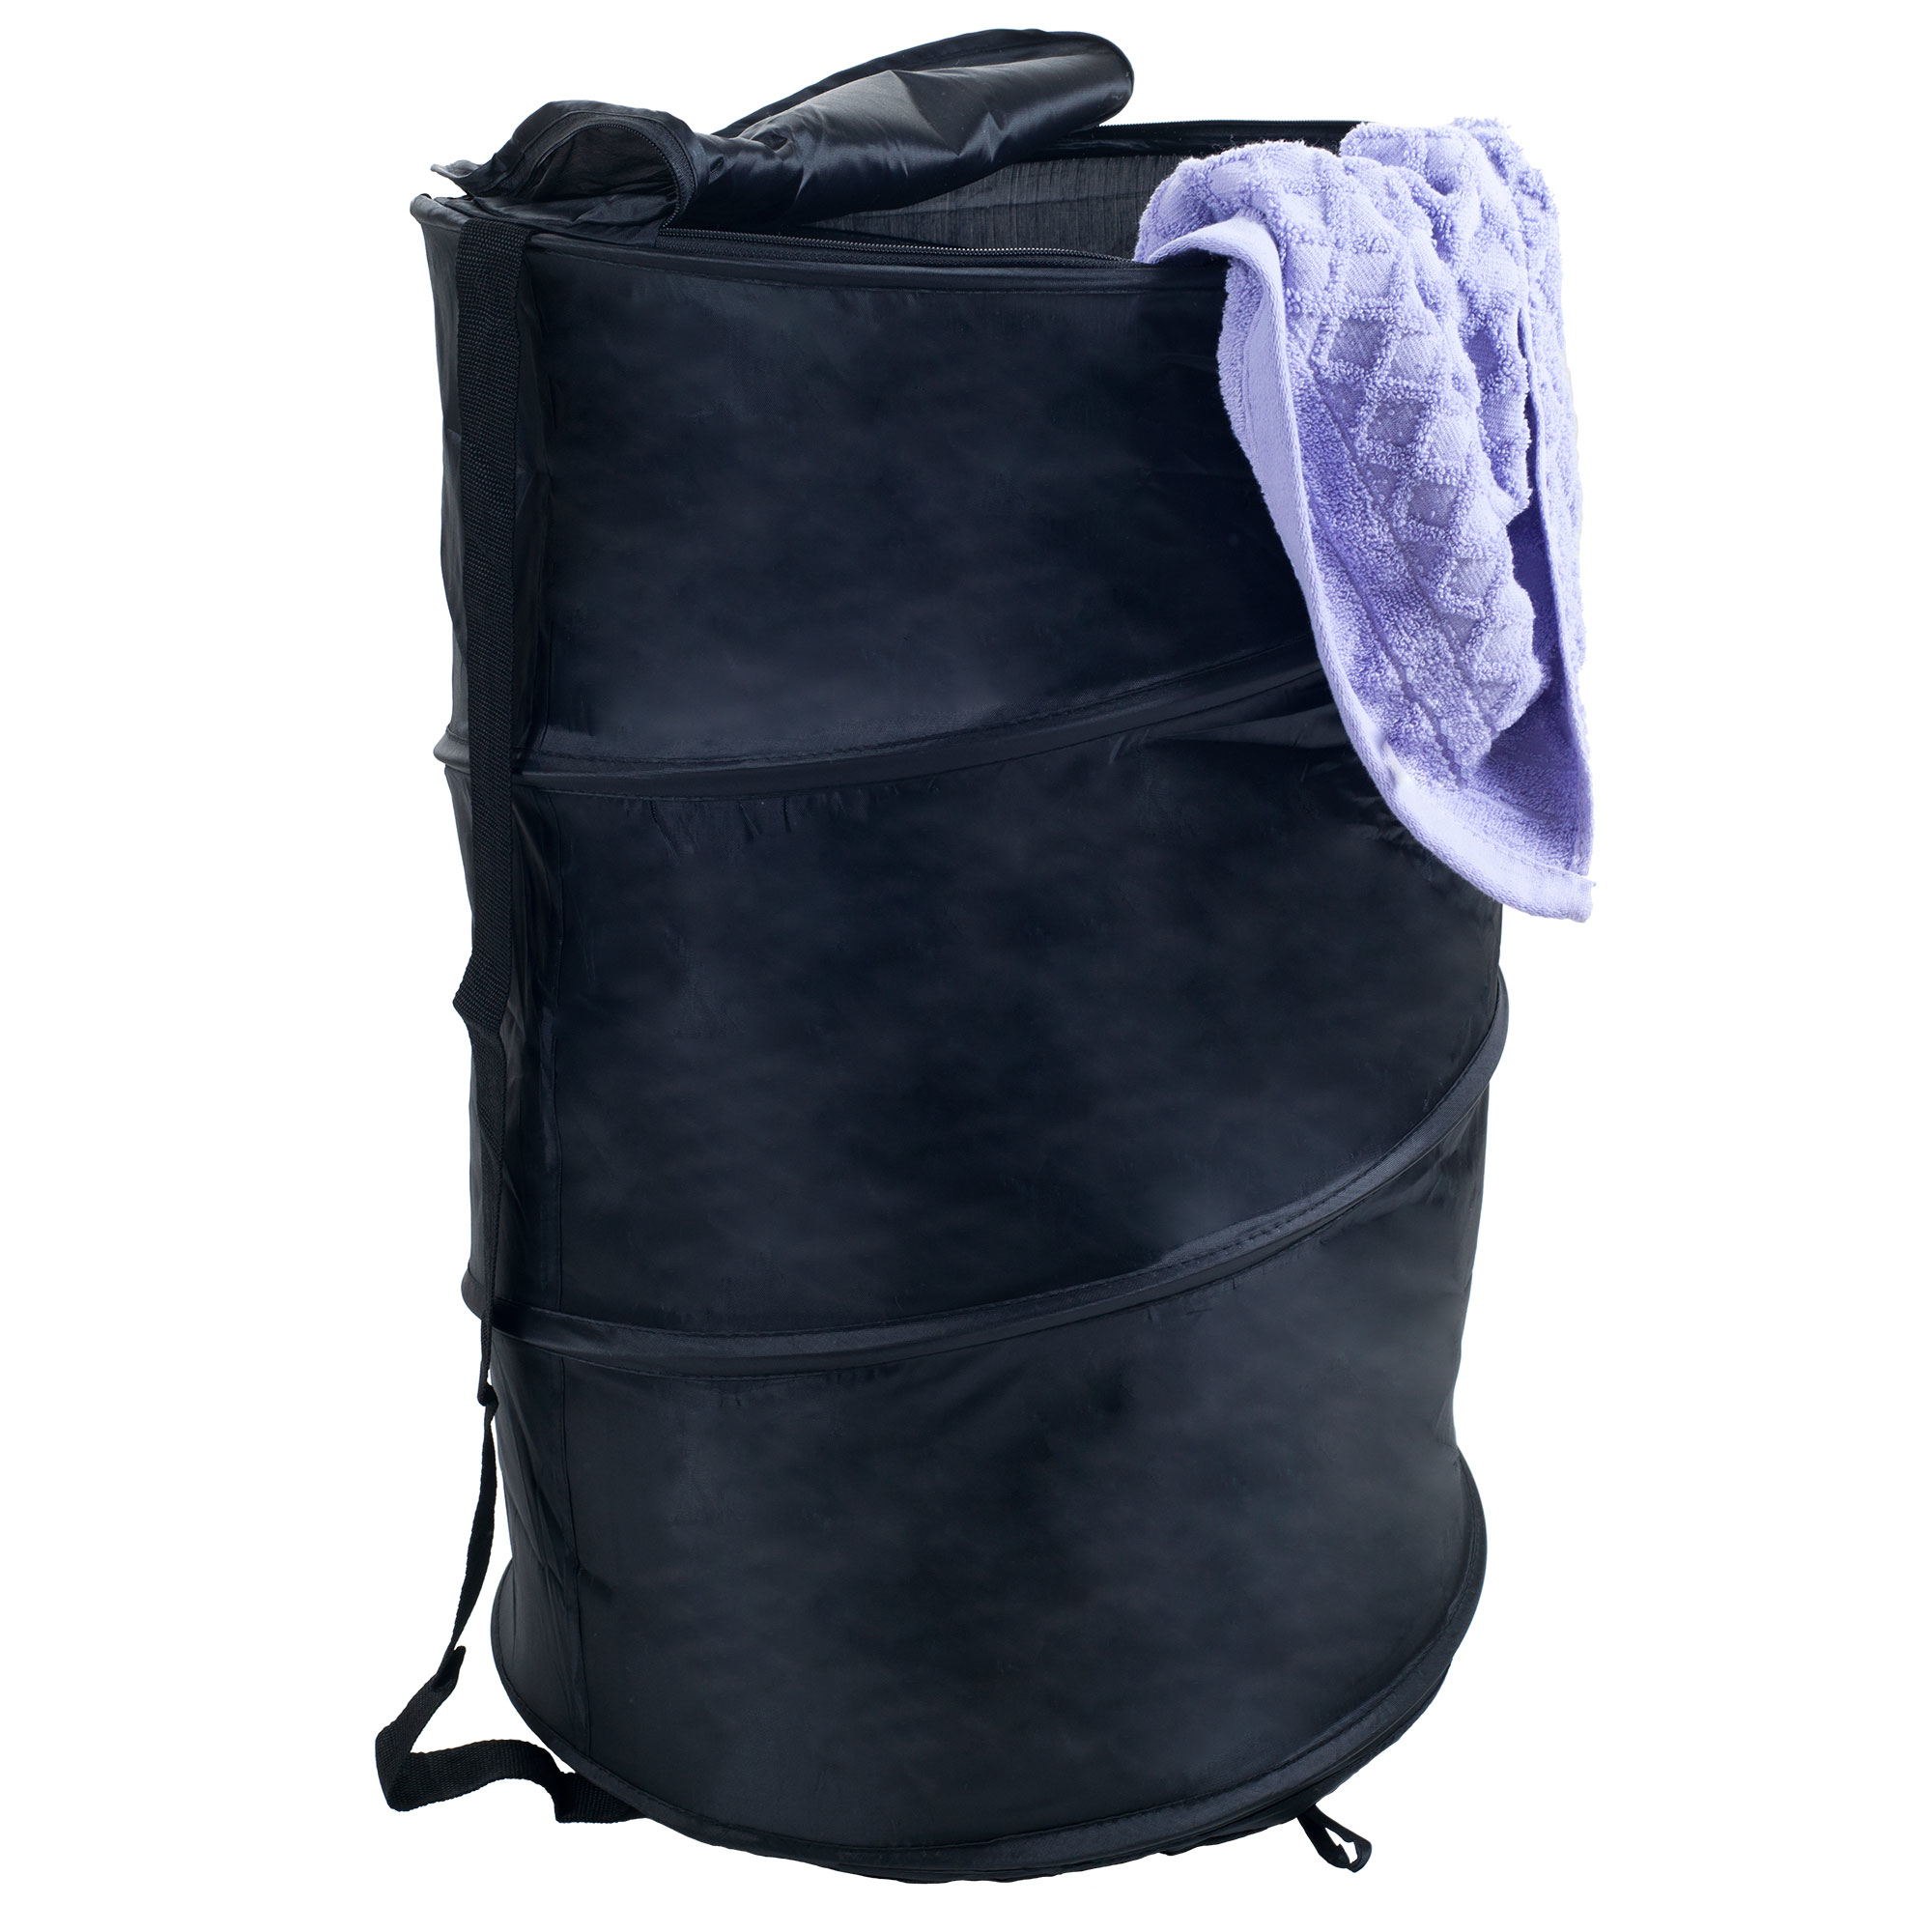 Pop Up Laundry Hamper-Collapsible Nylon Bag with Carrying Straps and Zipper for Dorm, Apartment